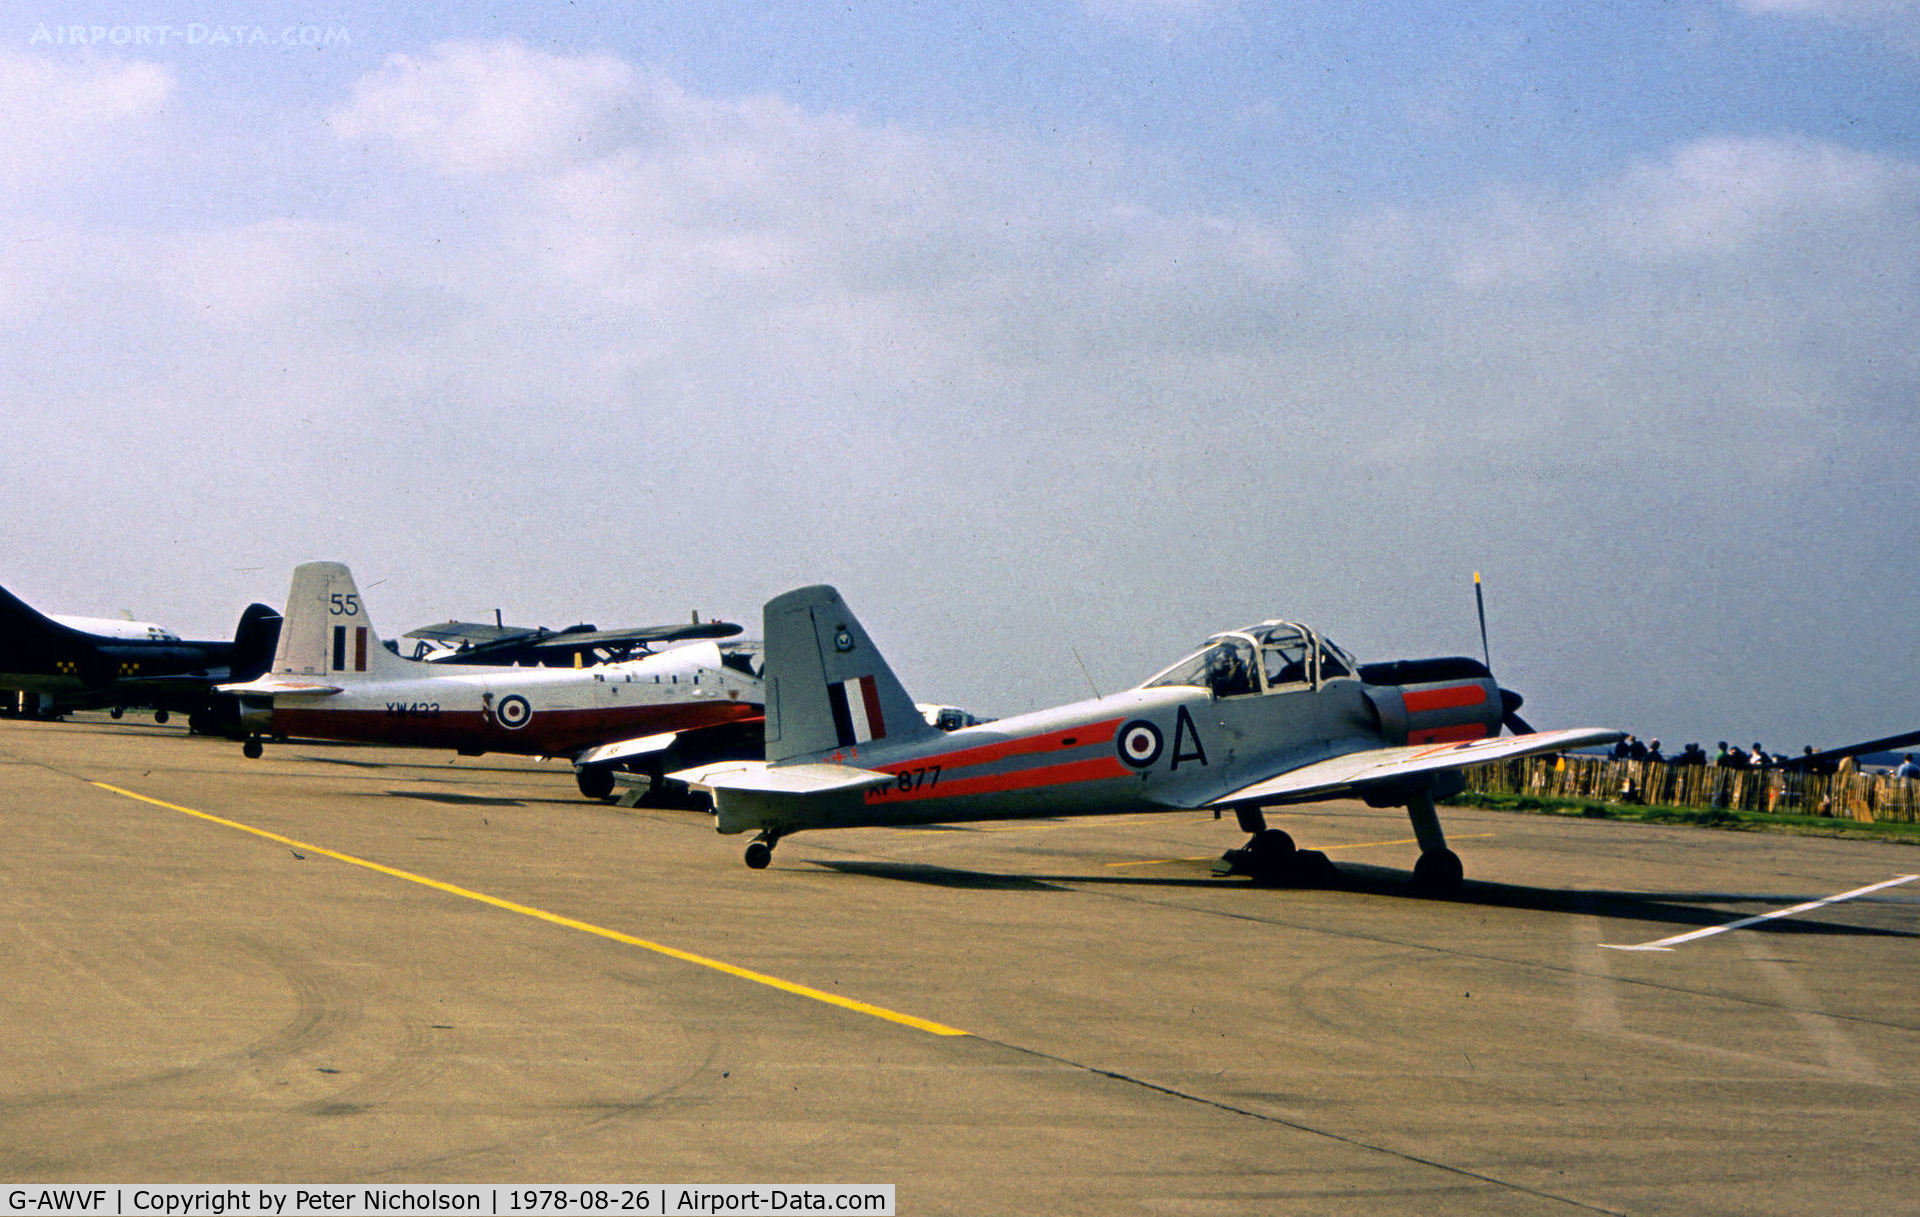 G-AWVF, 1955 Percival P-56 Provost T.1 C/N PAC/F/375, Provost T.1 as G-AWVF on display at the 1978 RAF Binbrook Airshow.